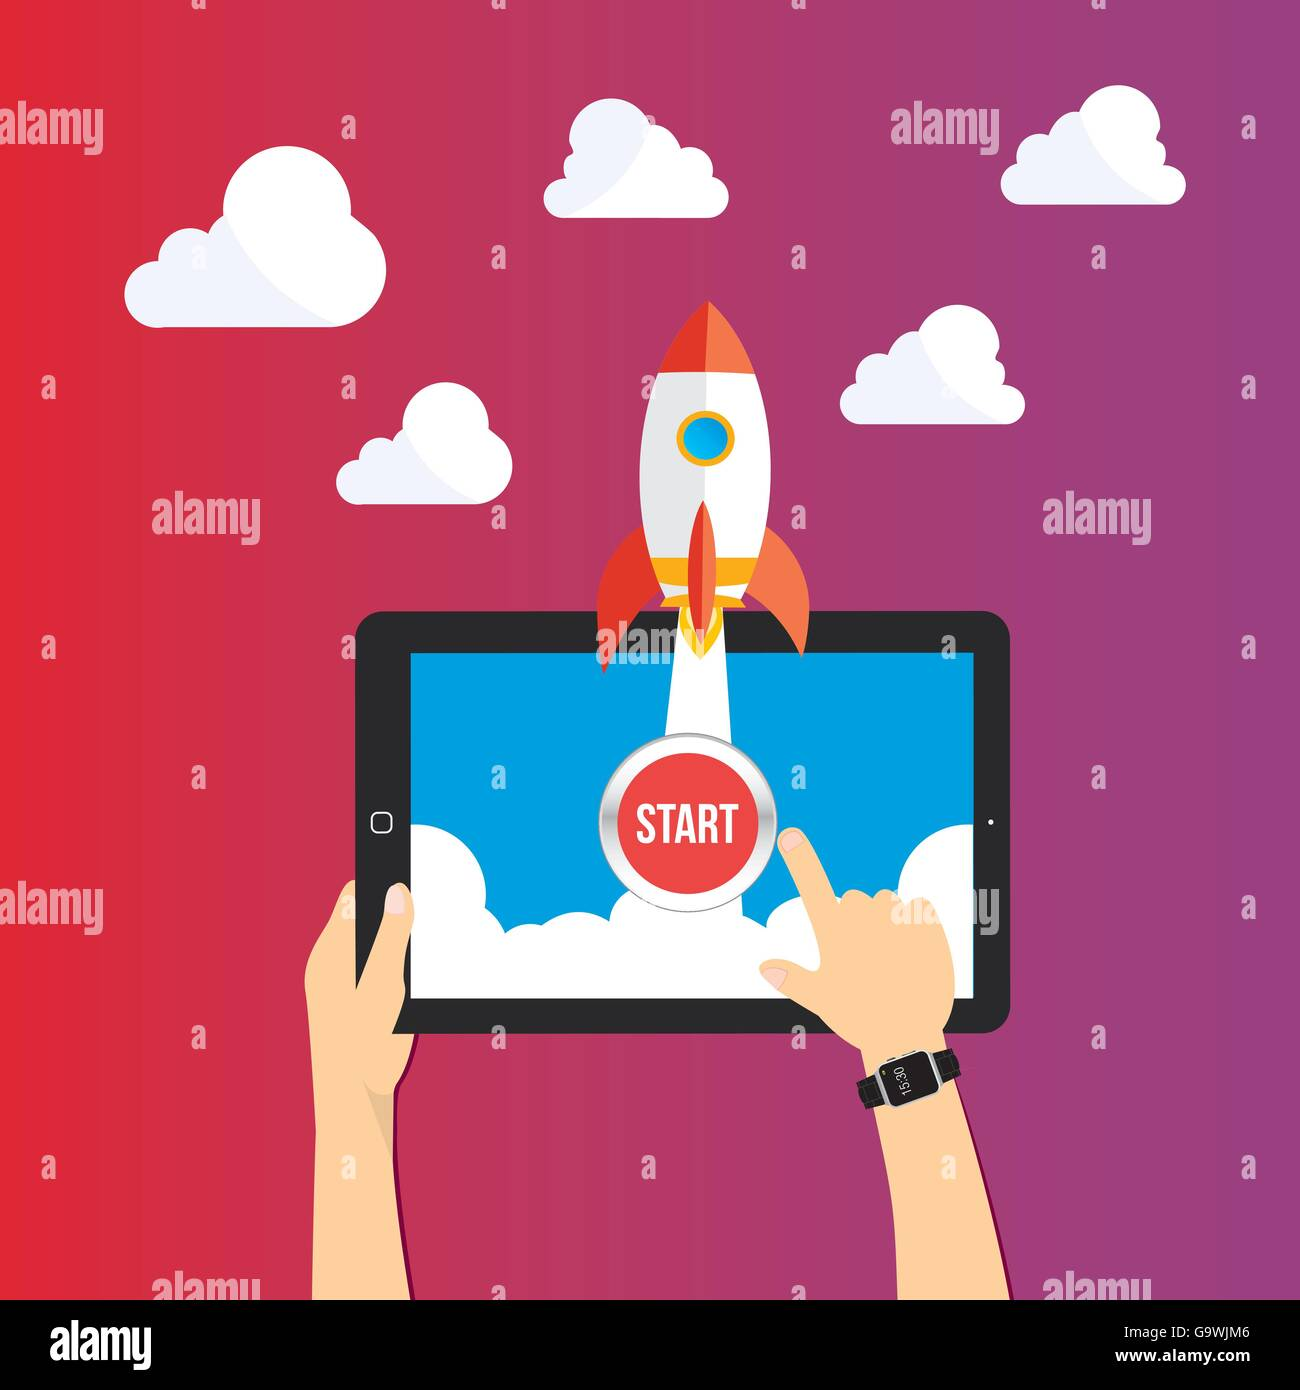 start up launch concept illustration - Stock Image